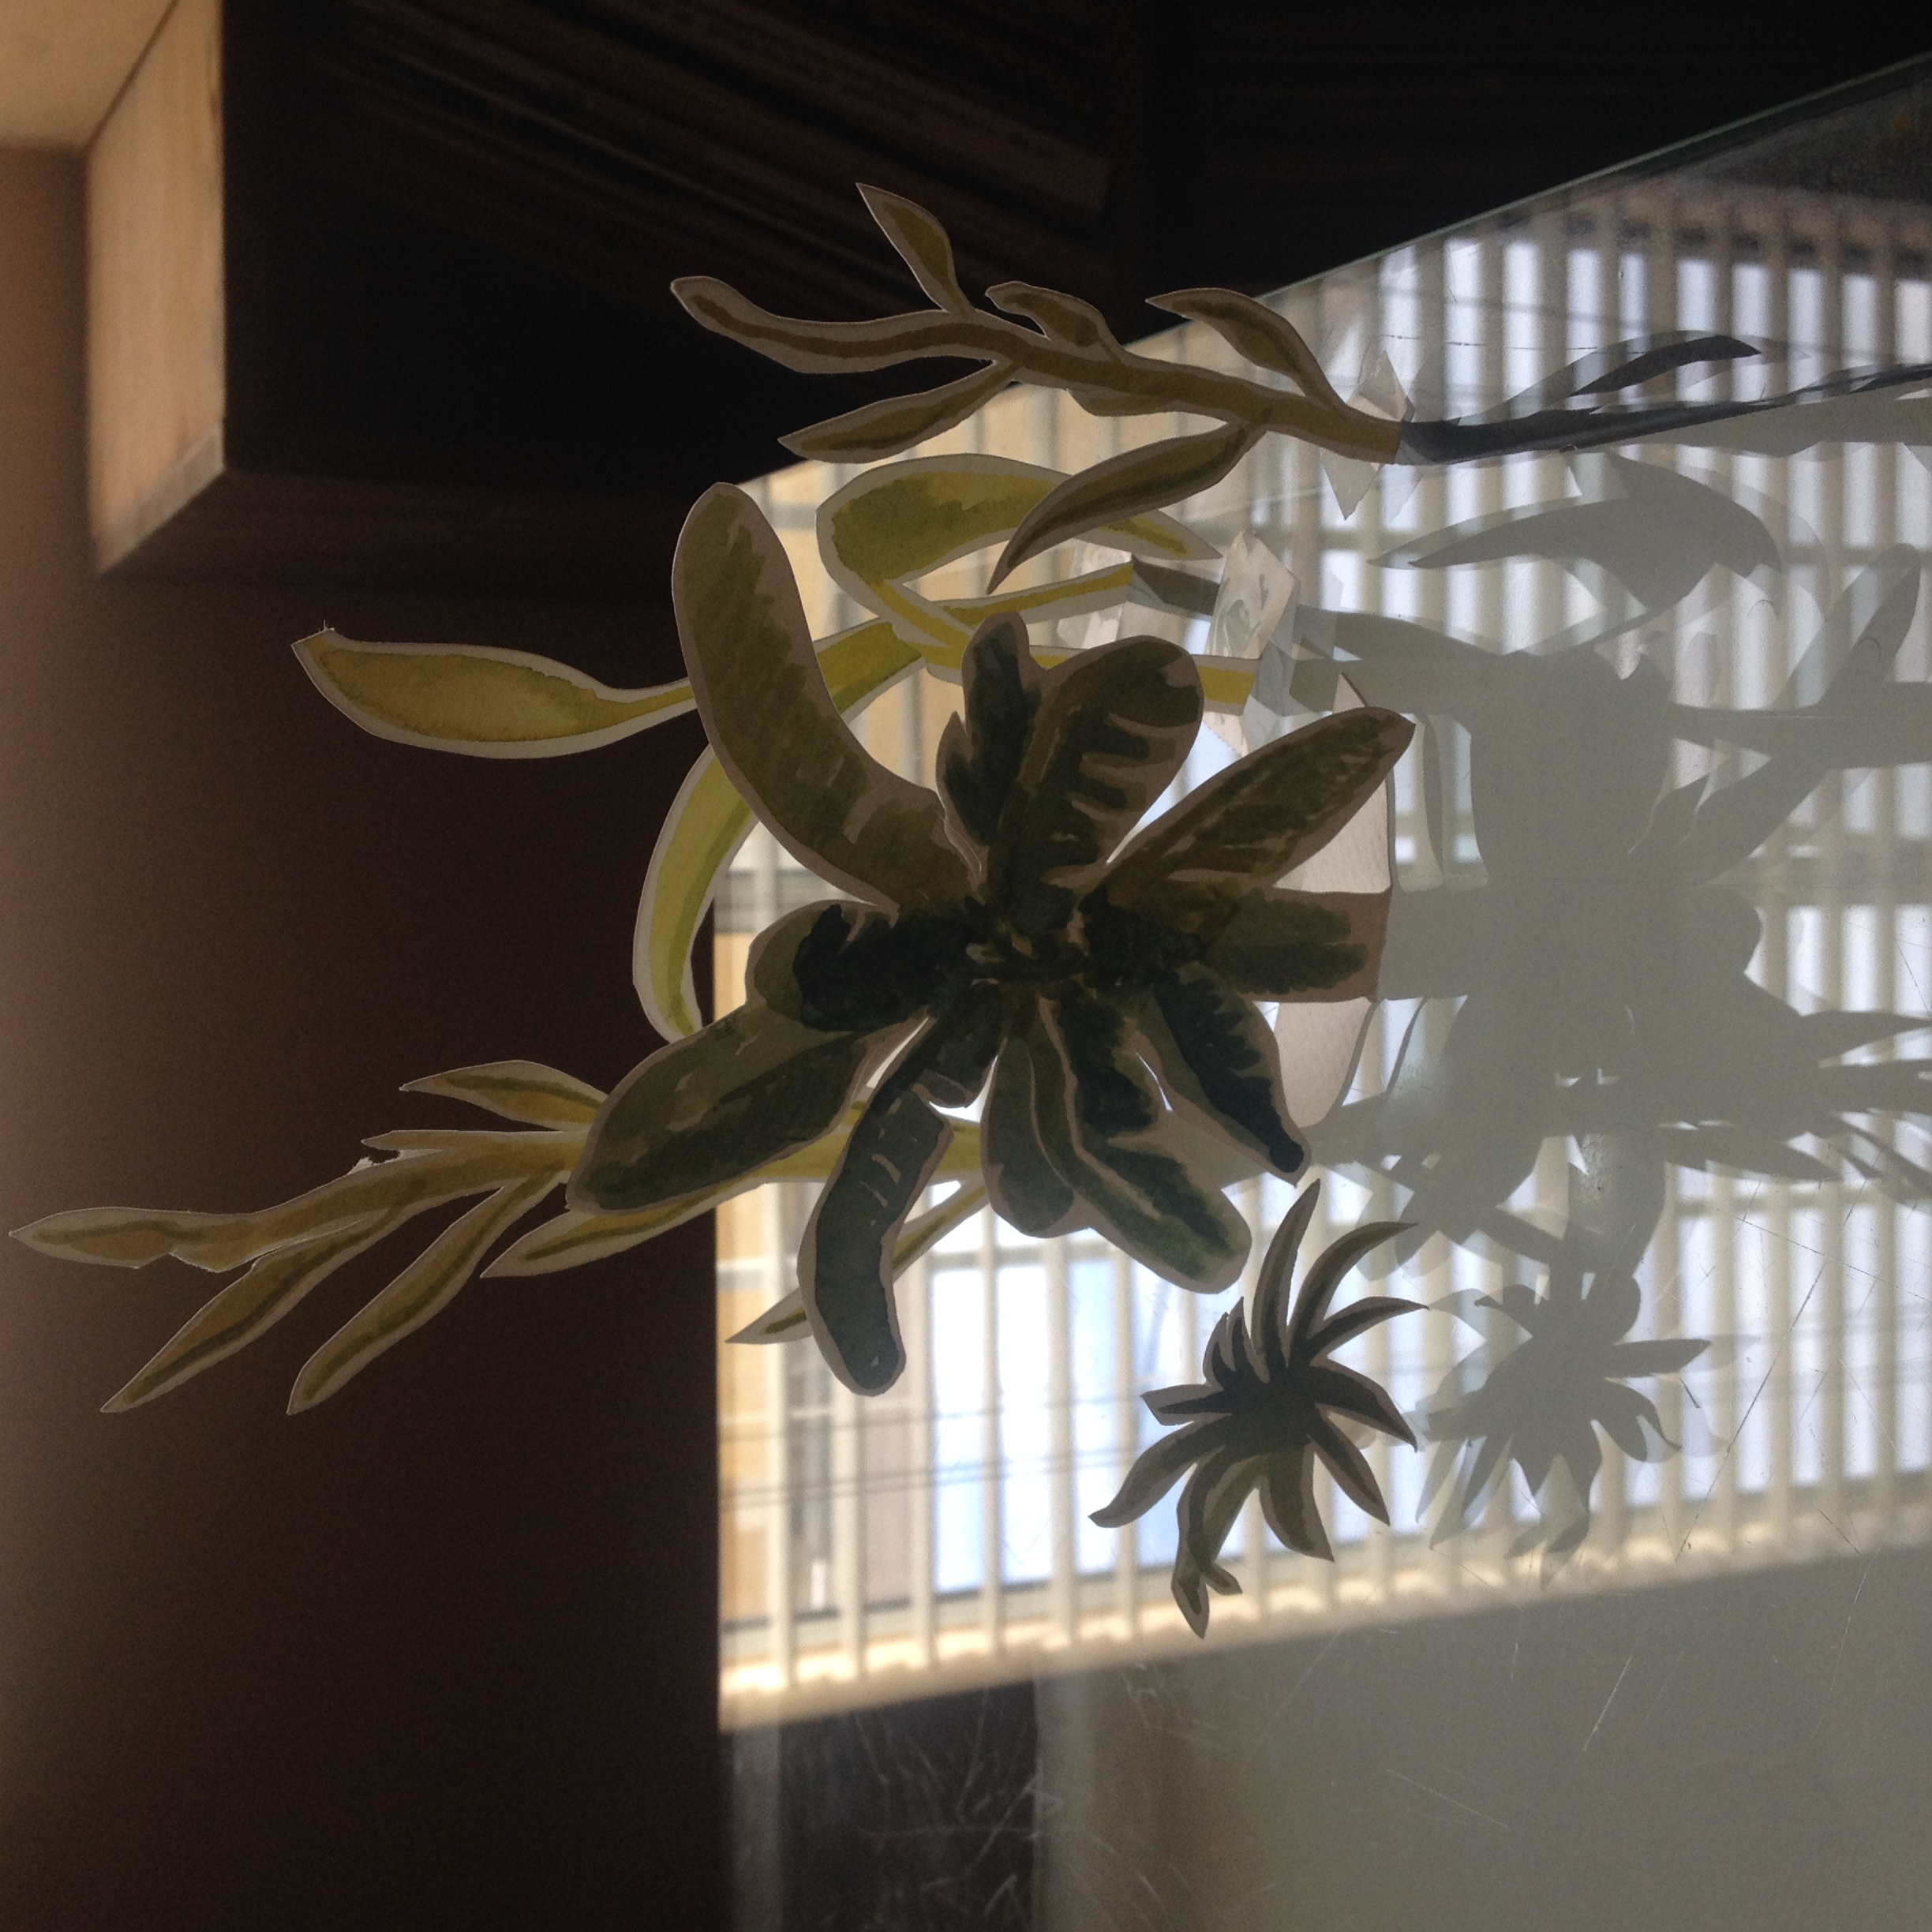 Cut paper plants with window reflection.